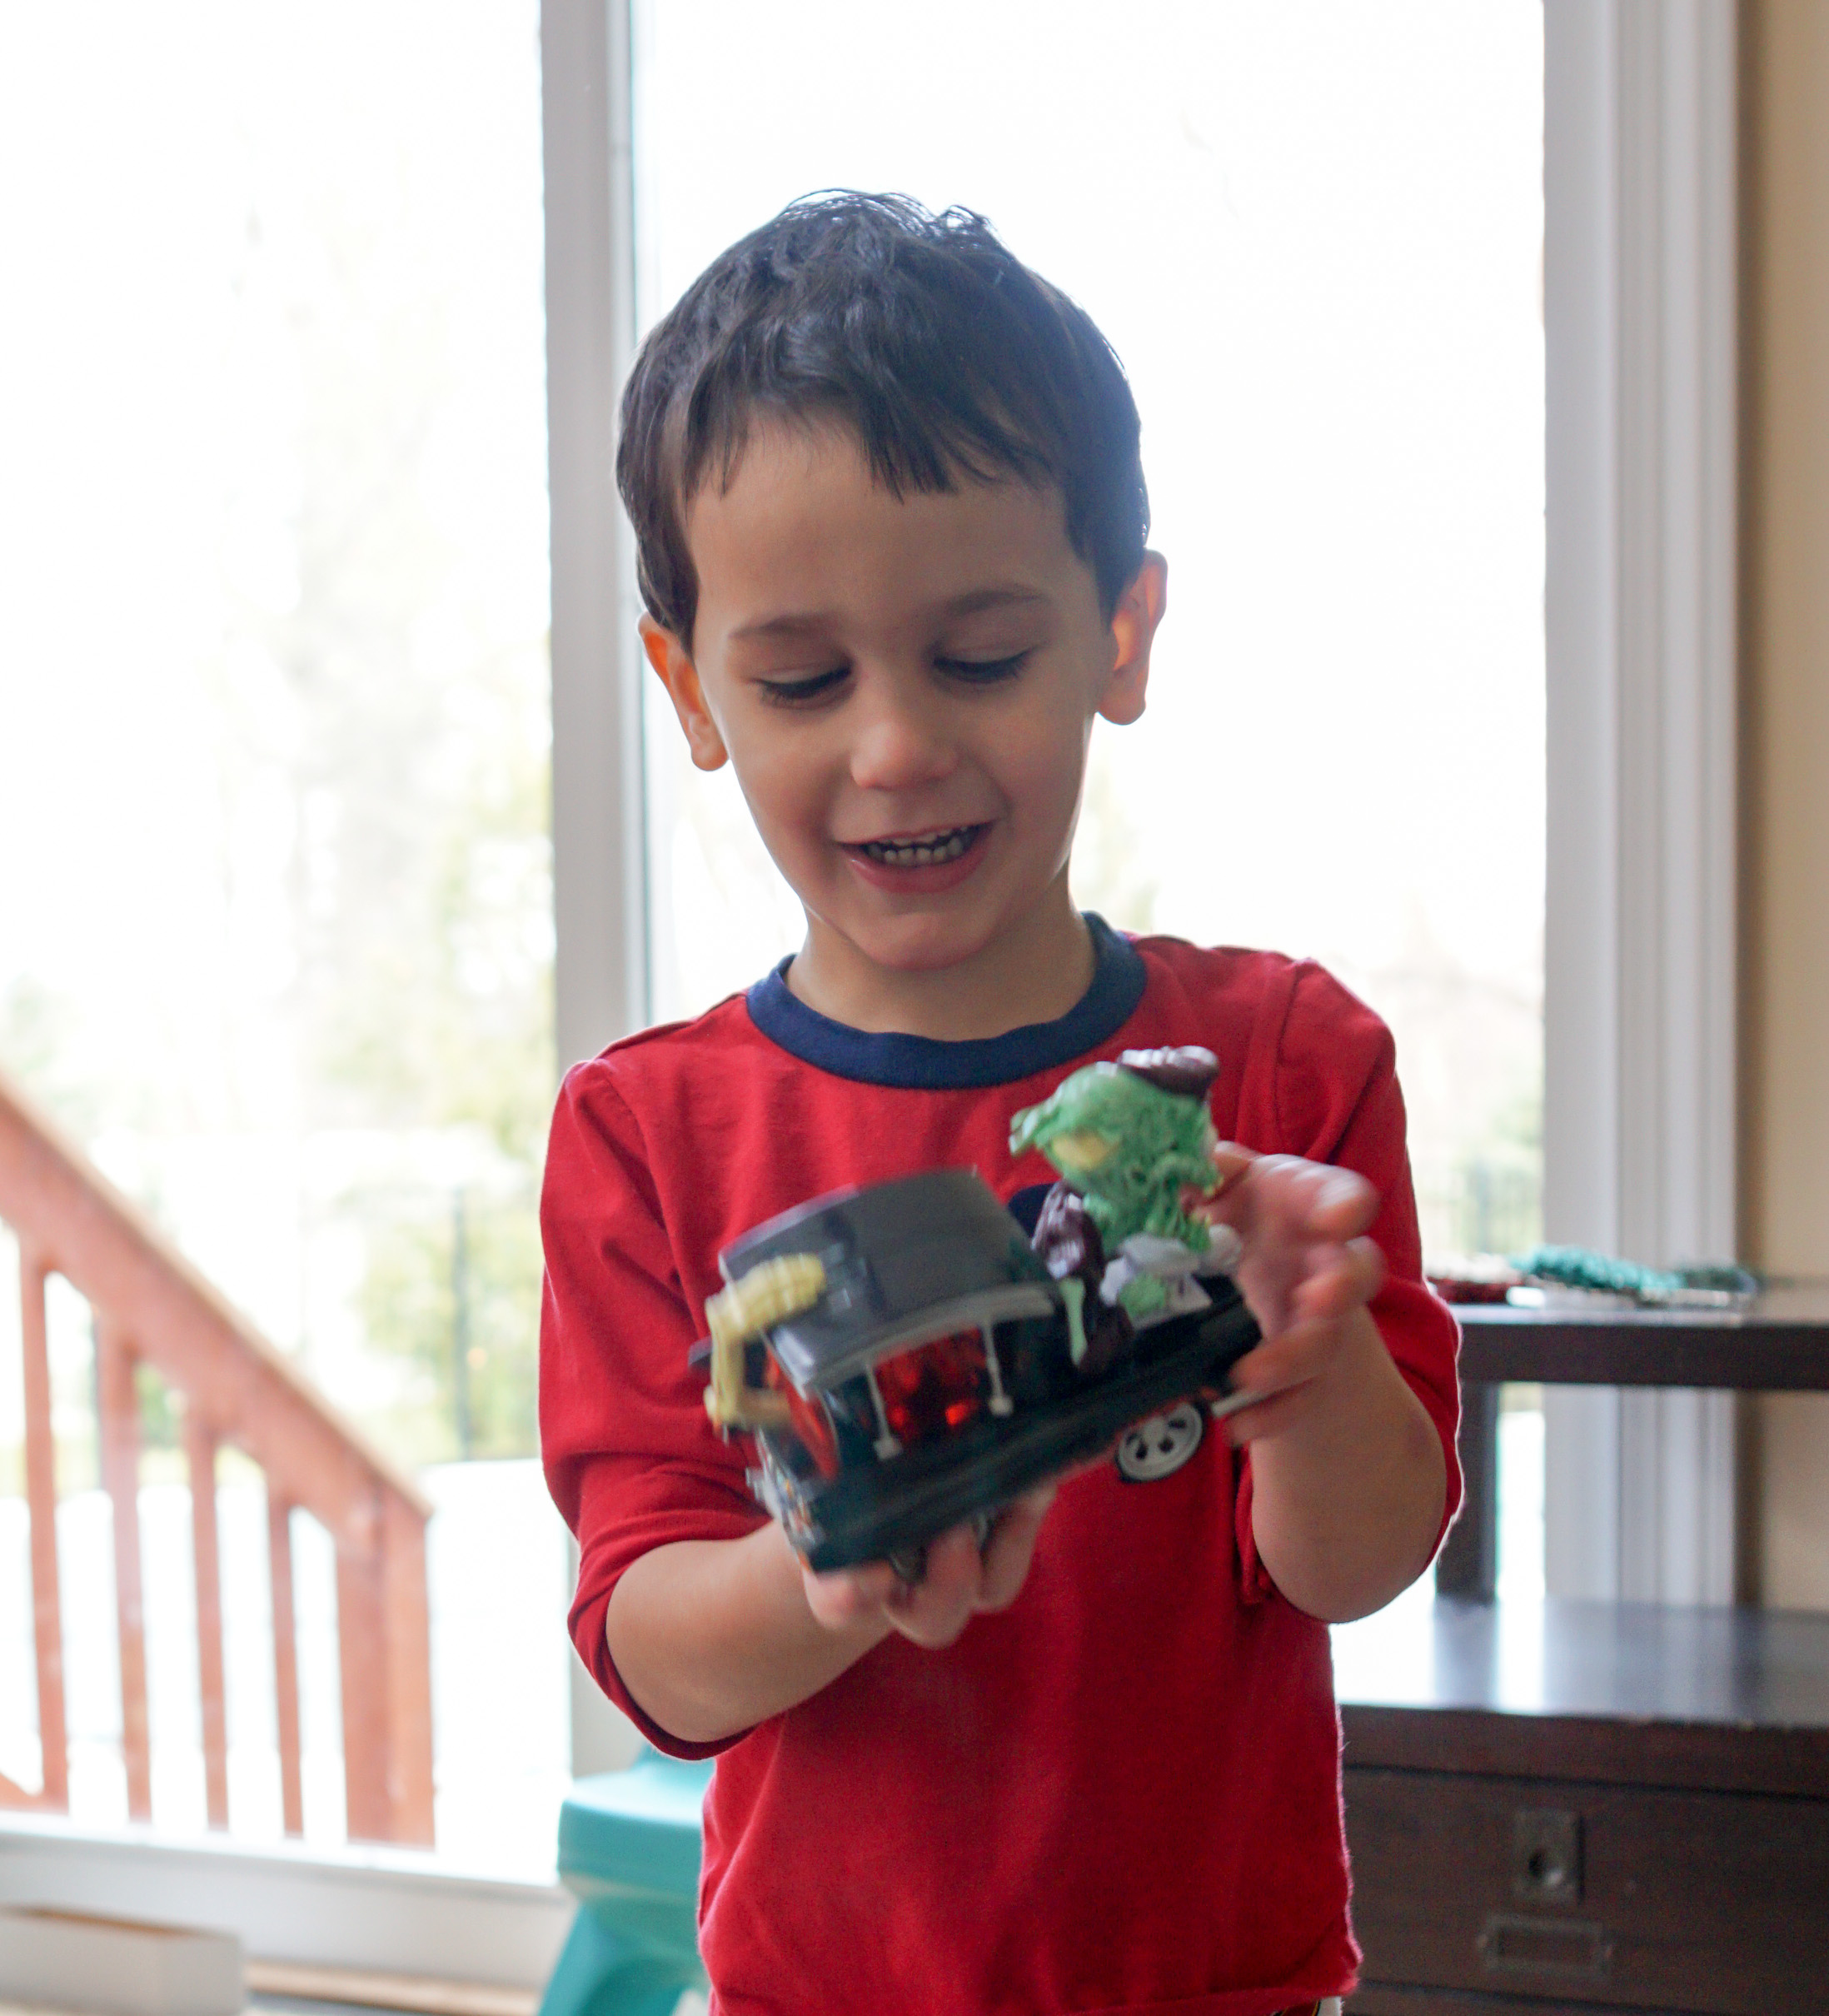 Thomas with Monster 500 truck